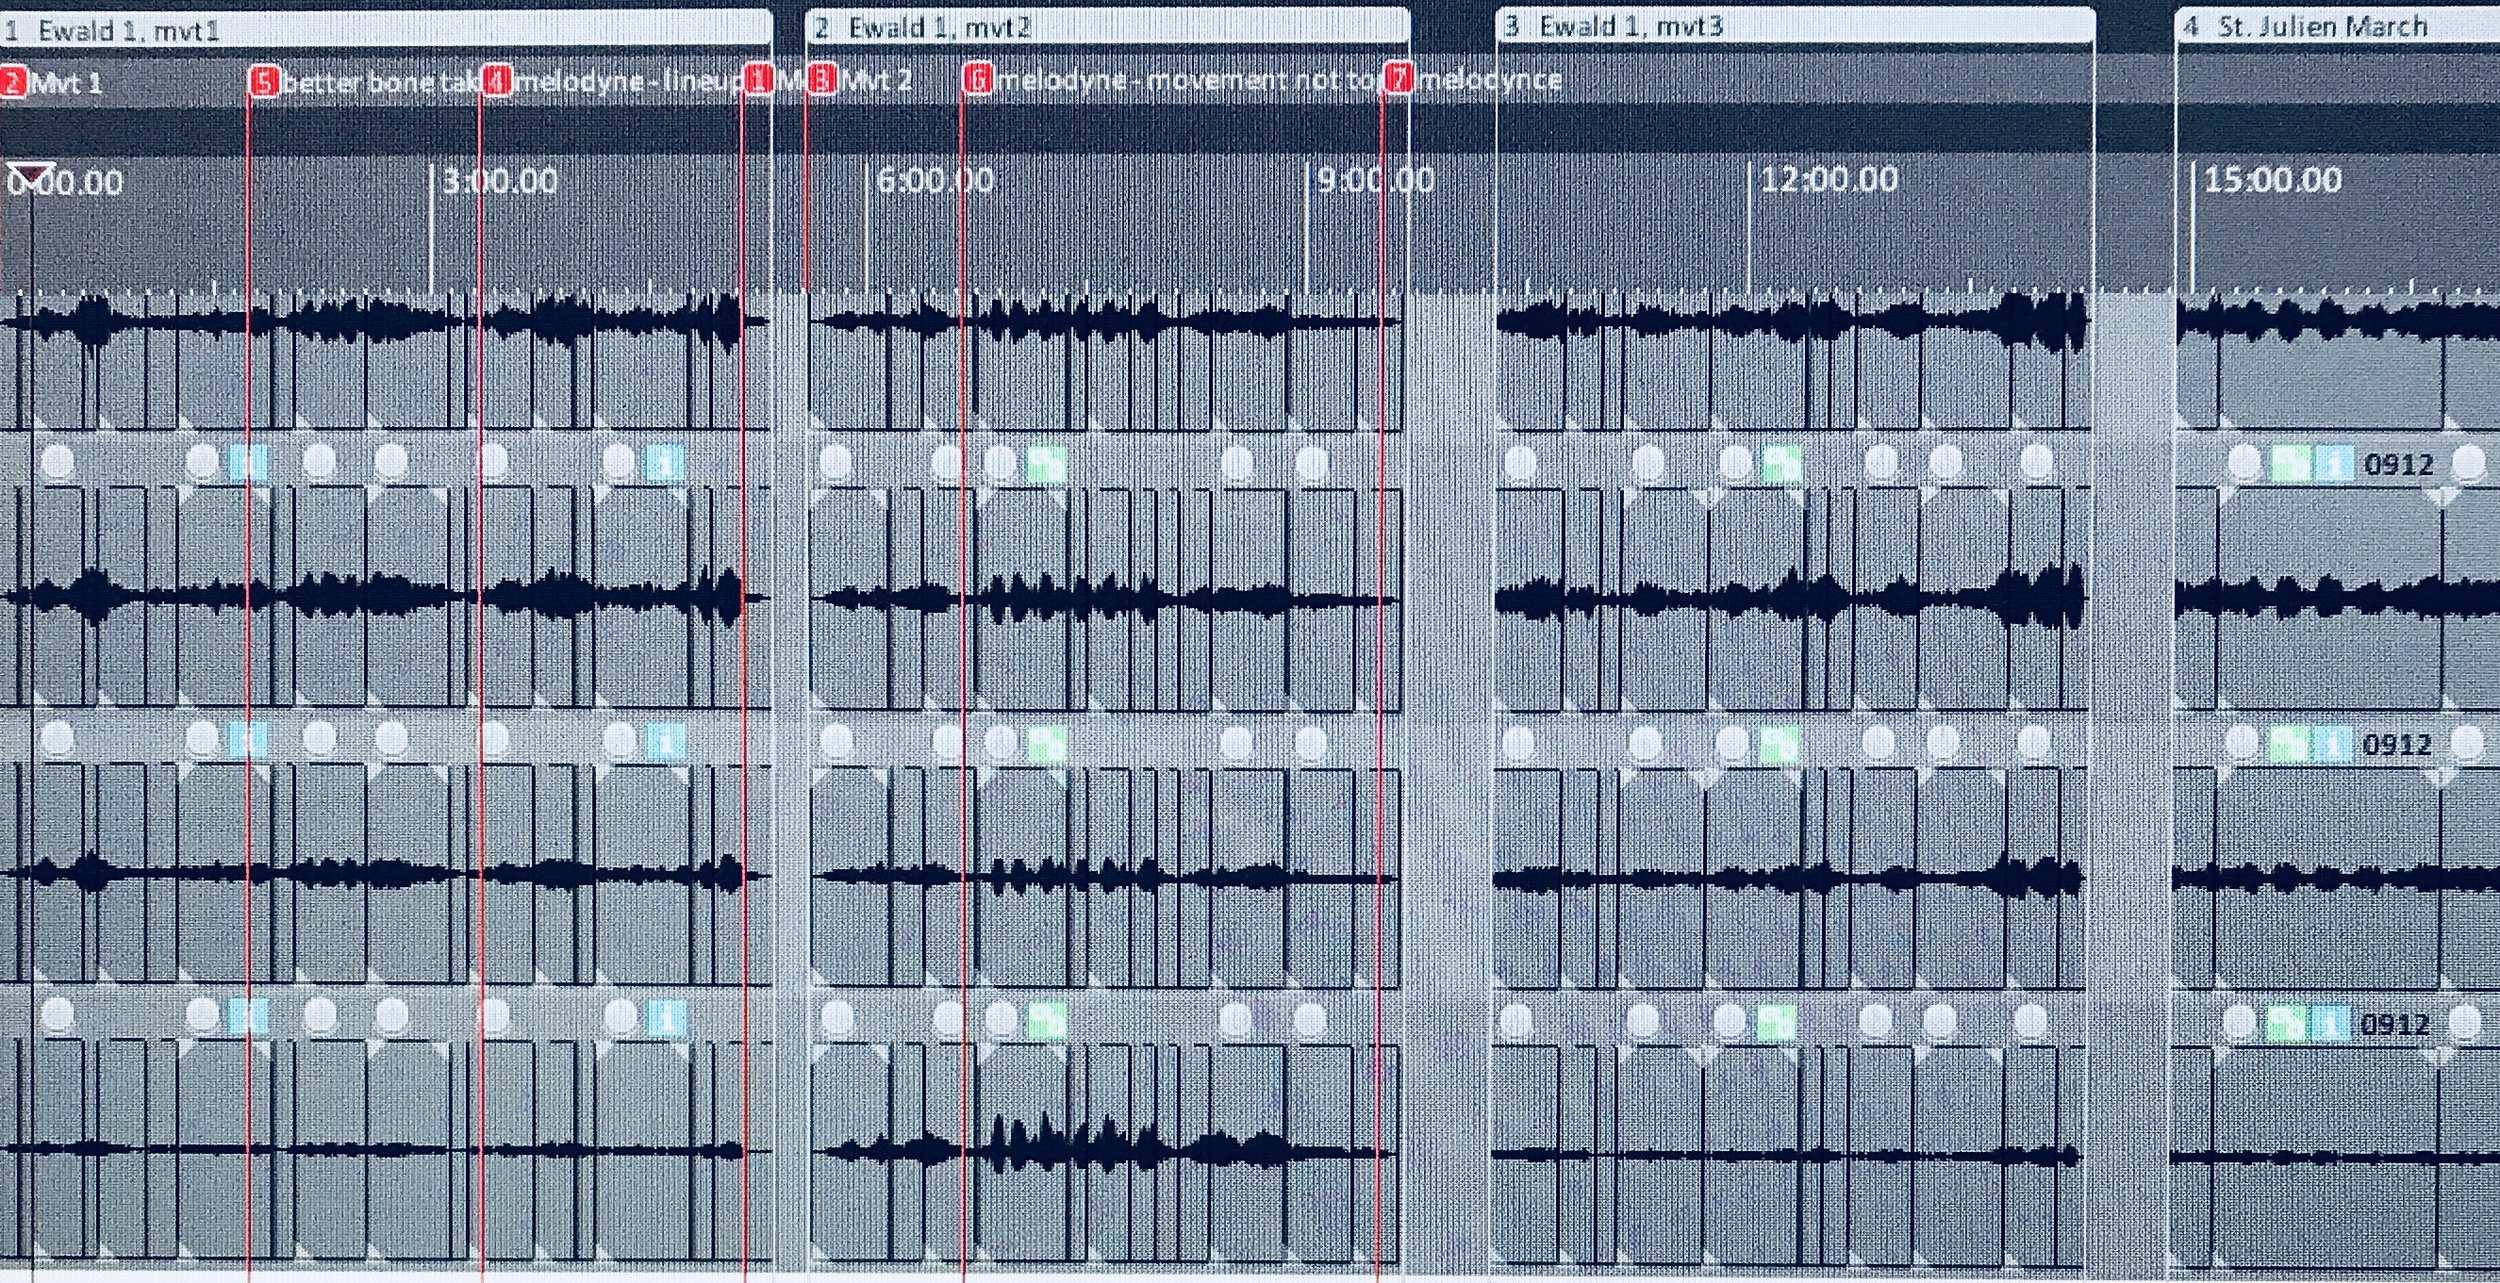 Edits to a recorded work, performed by the producer (me) in this case. This session was recorded by my friends at Arts Laureate.